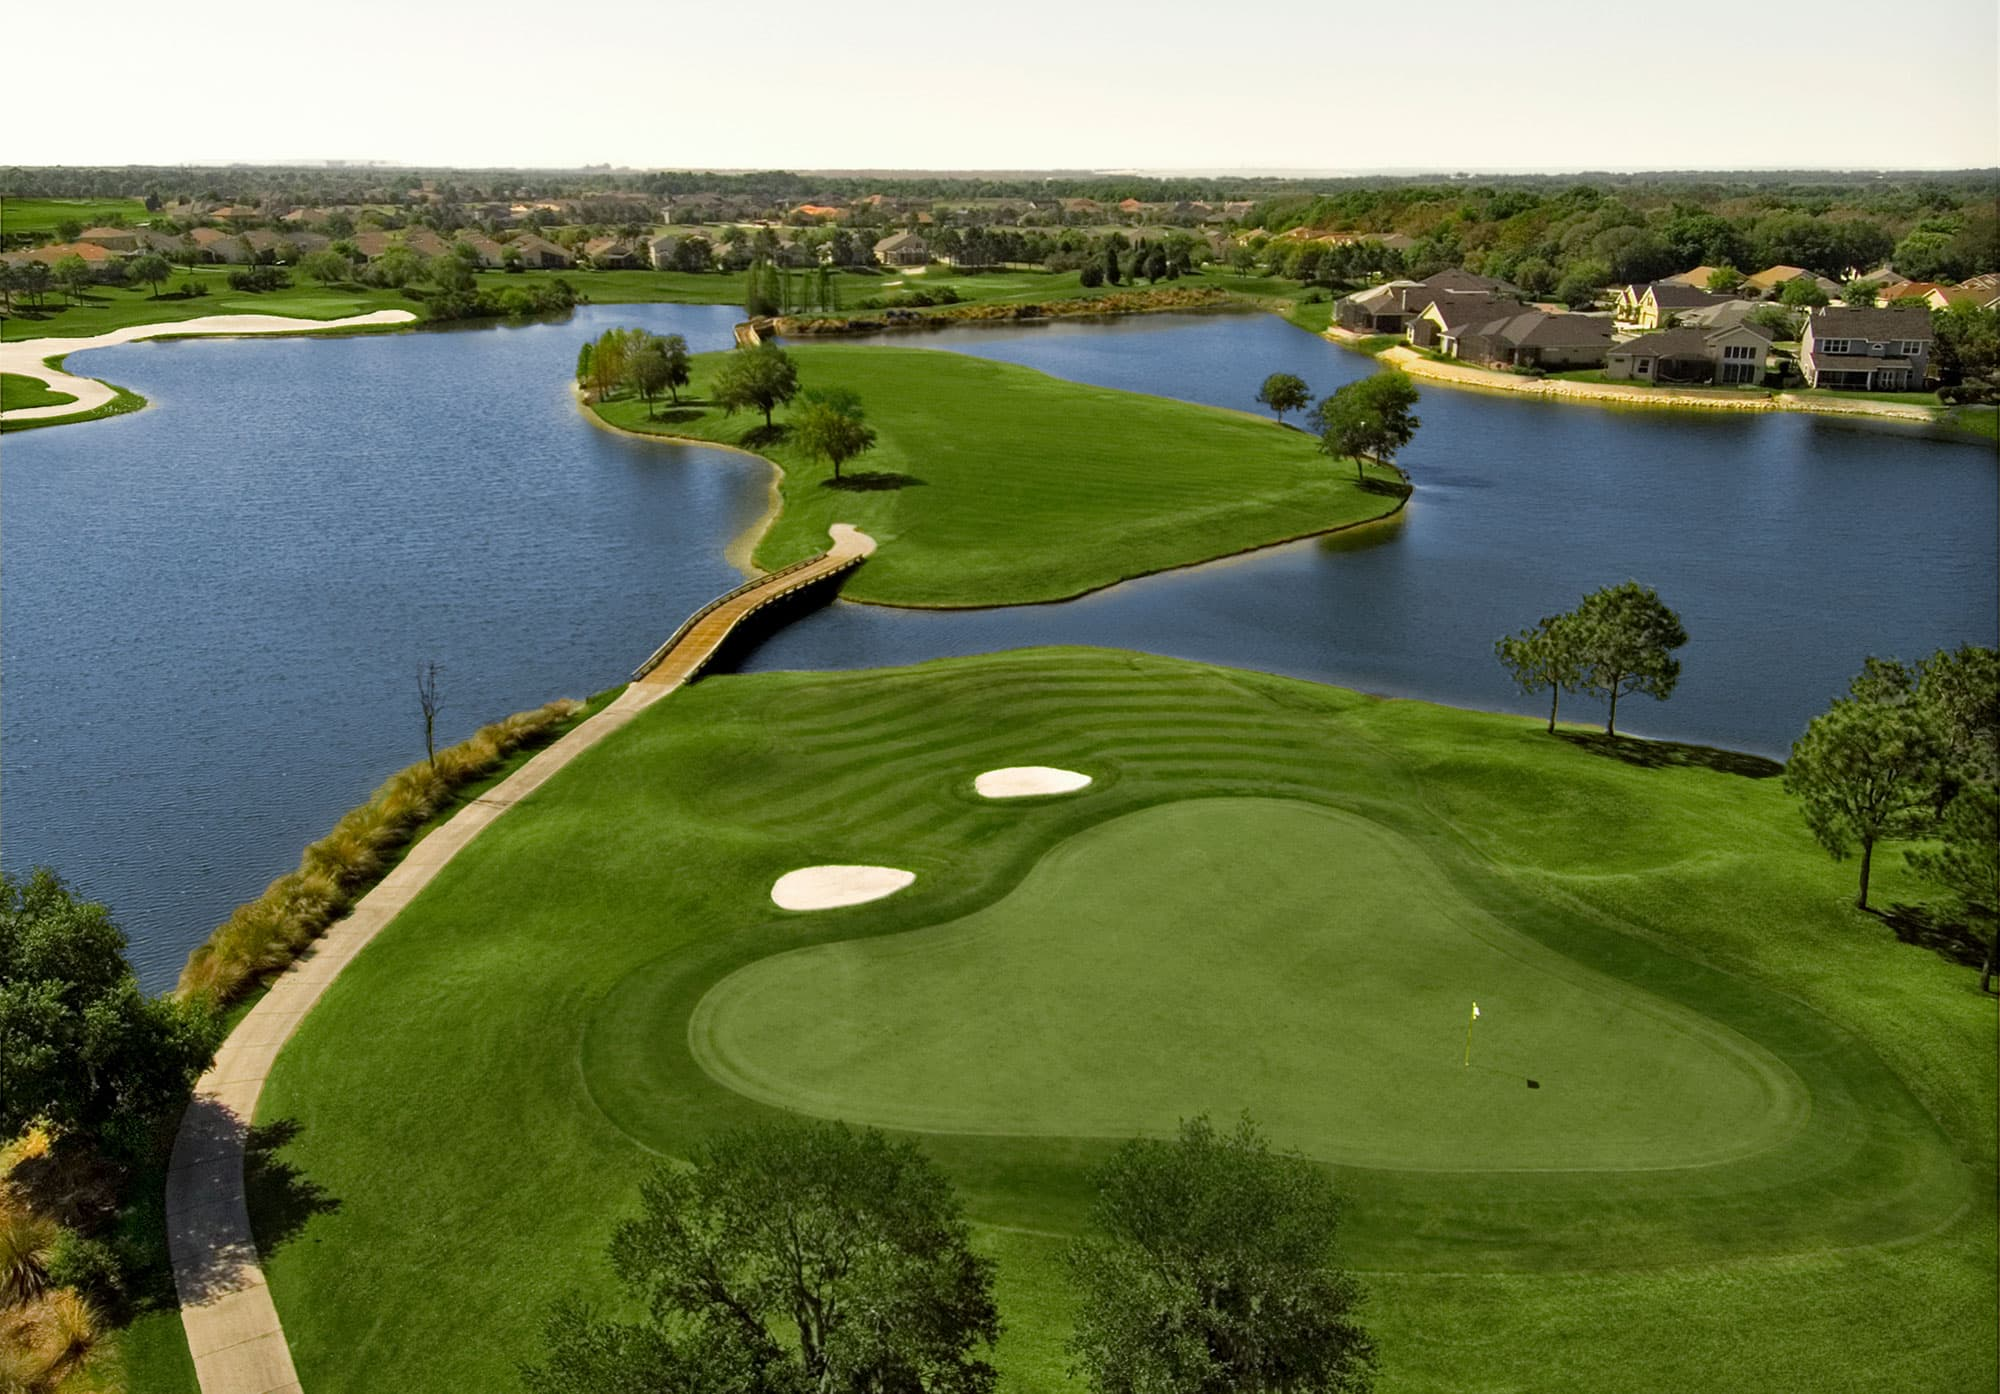 Par 3 hole featuring over the water shot to tee at Eaglebrooke Golf & Country Club in Lakeland, FL